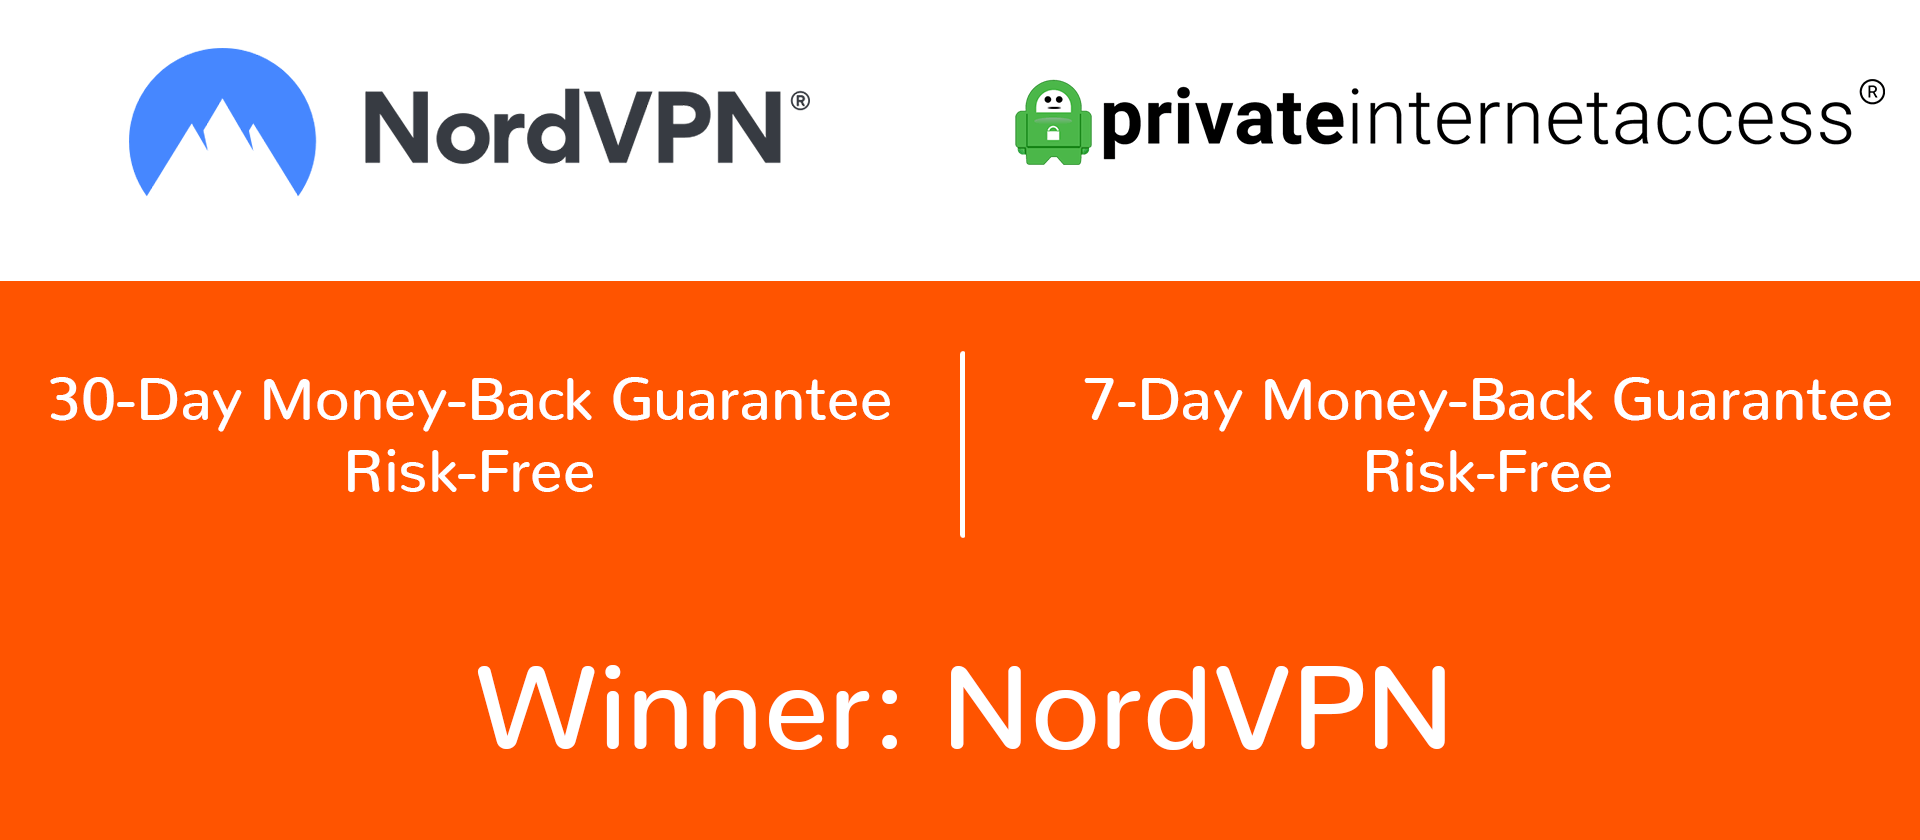 NordVPN and PIA refund policy comparison